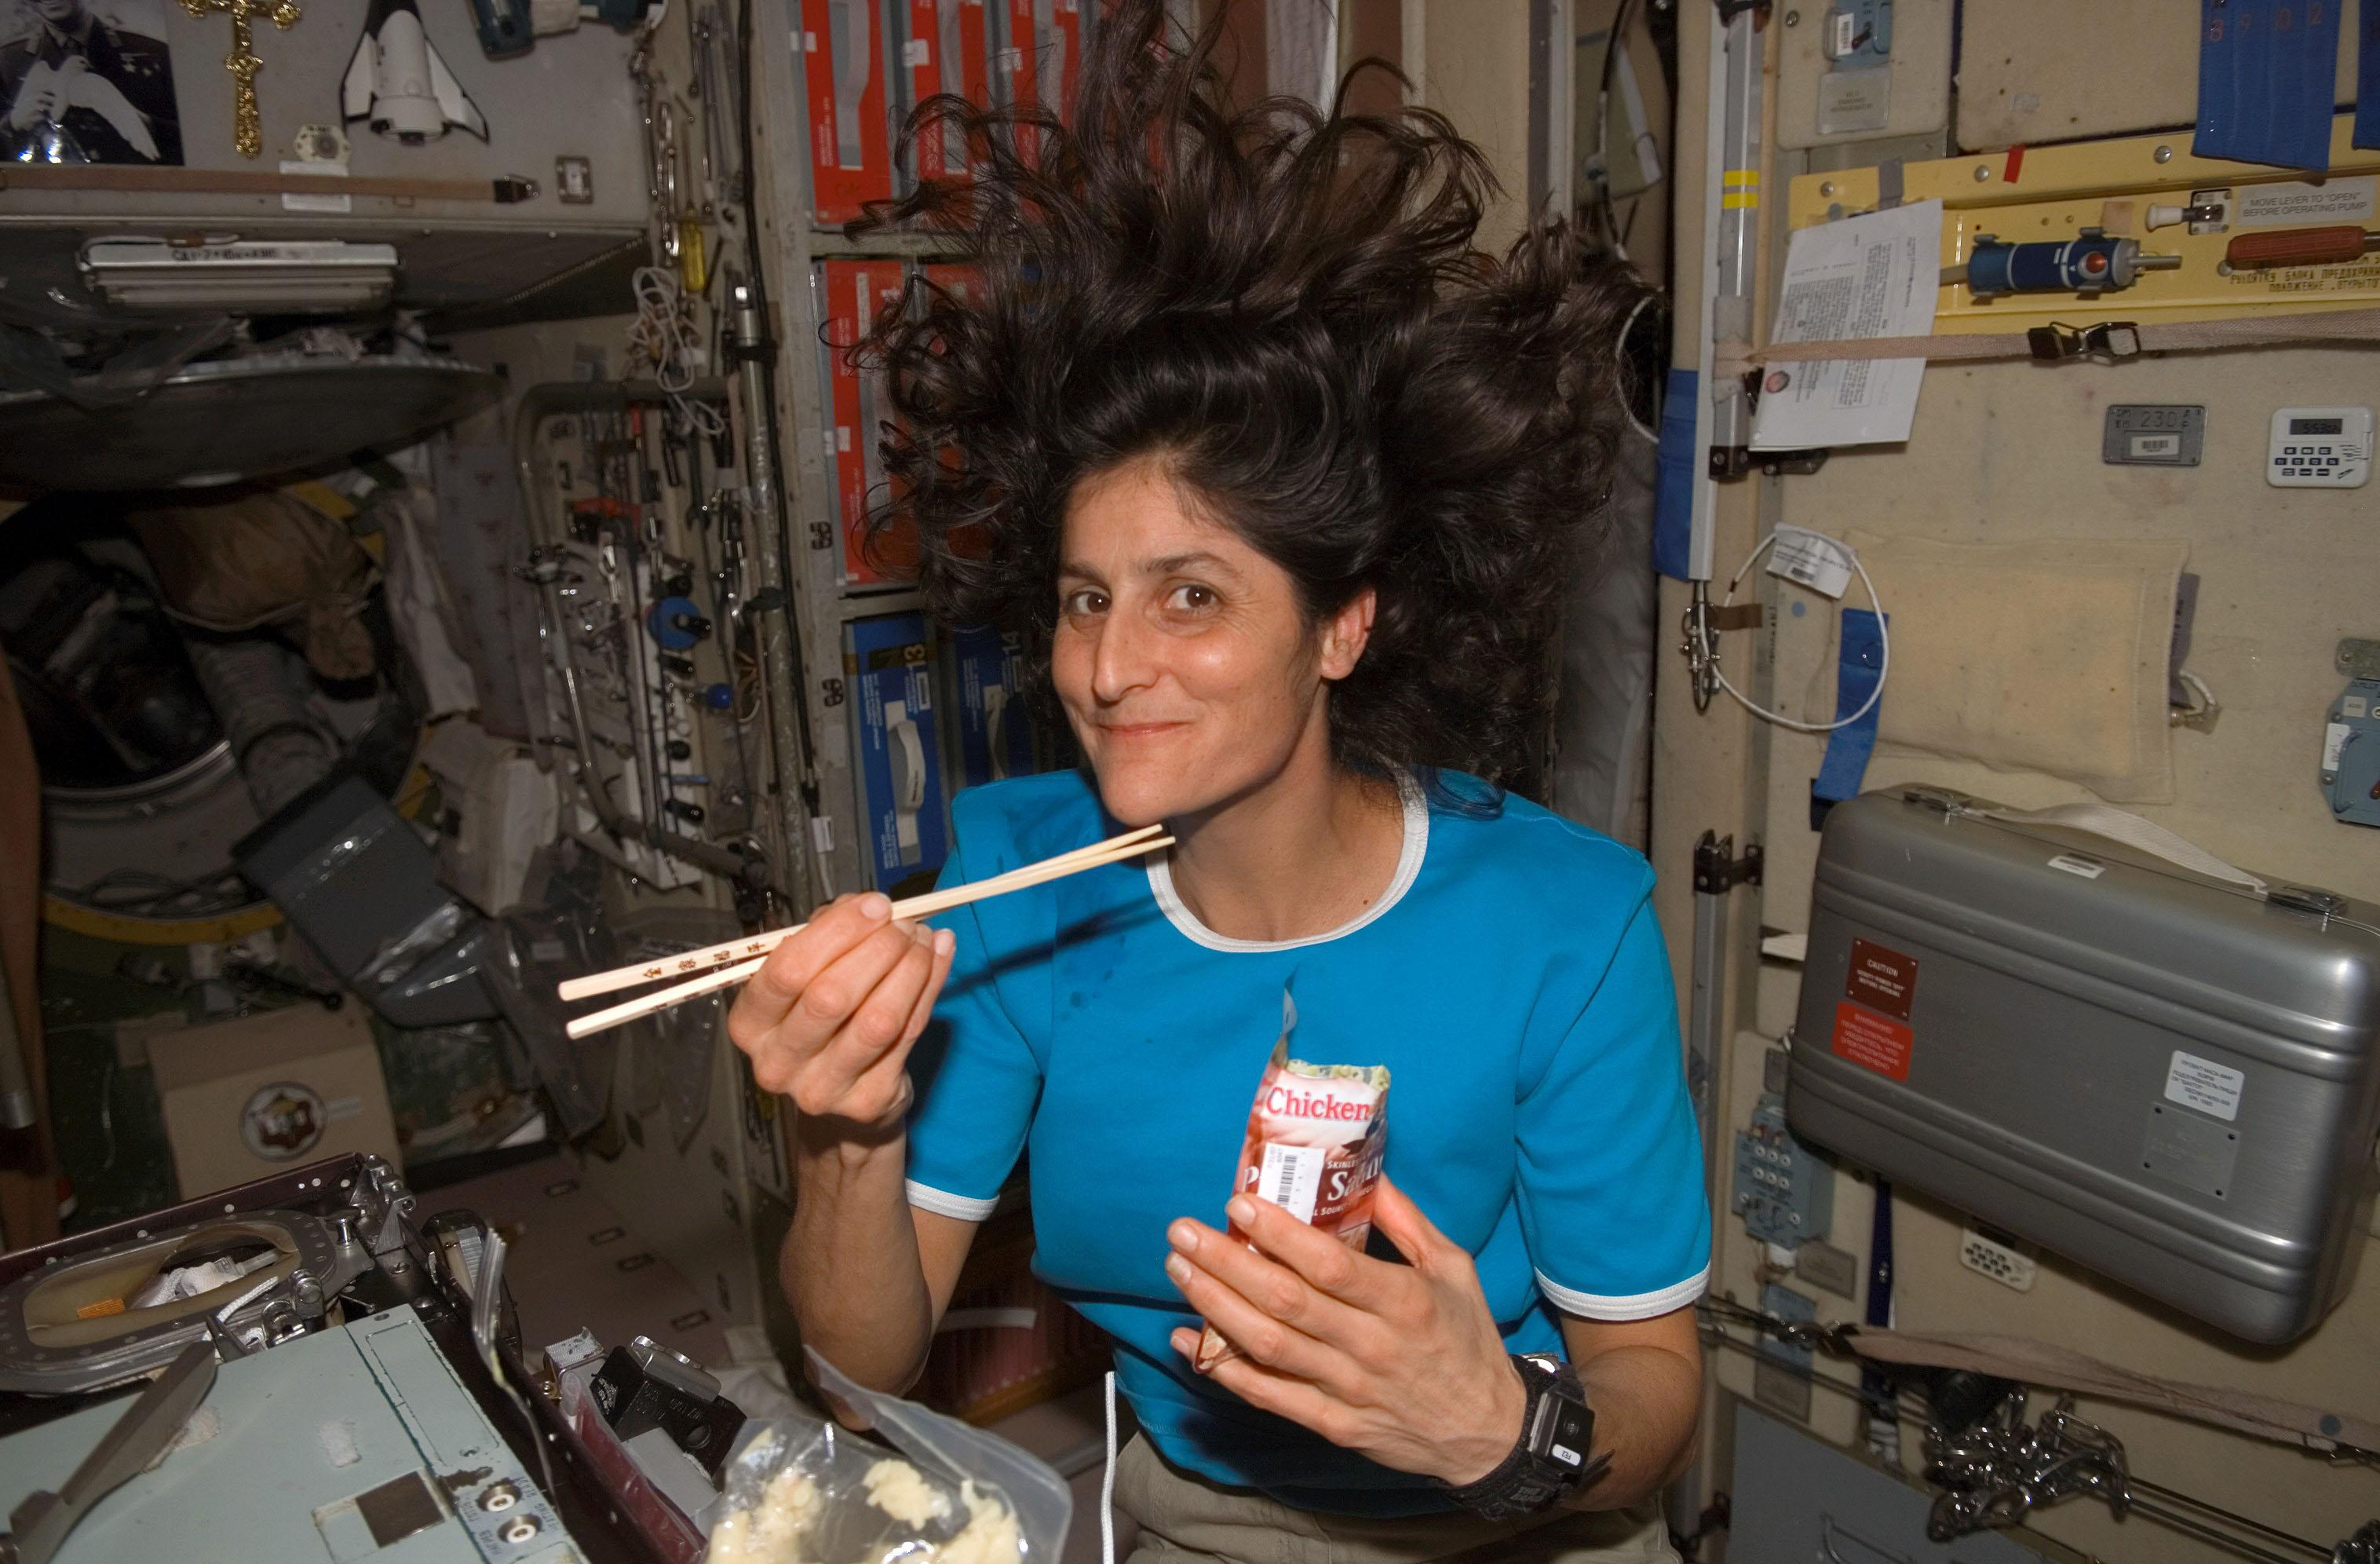 http://www.nasa.gov/sites/default/files/images/348166main_suni-williams_full.jpg